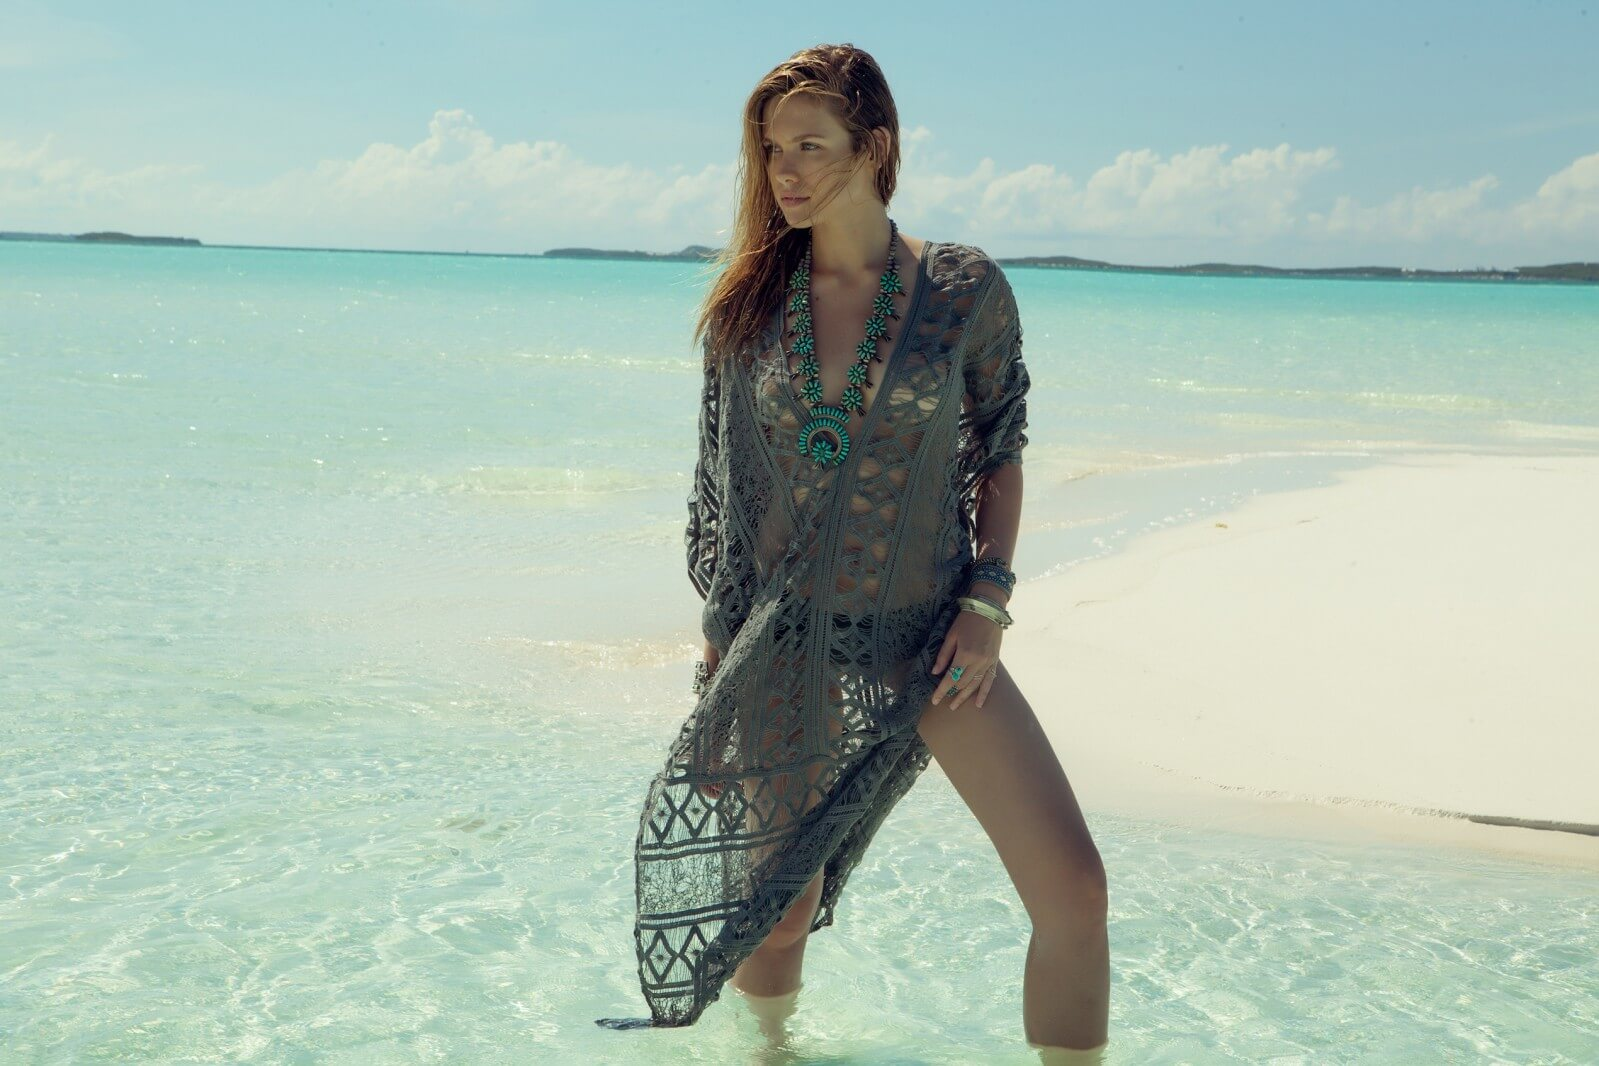 Lacey Kaftan, £231, by Lejerbey at www.beachflamingo.com